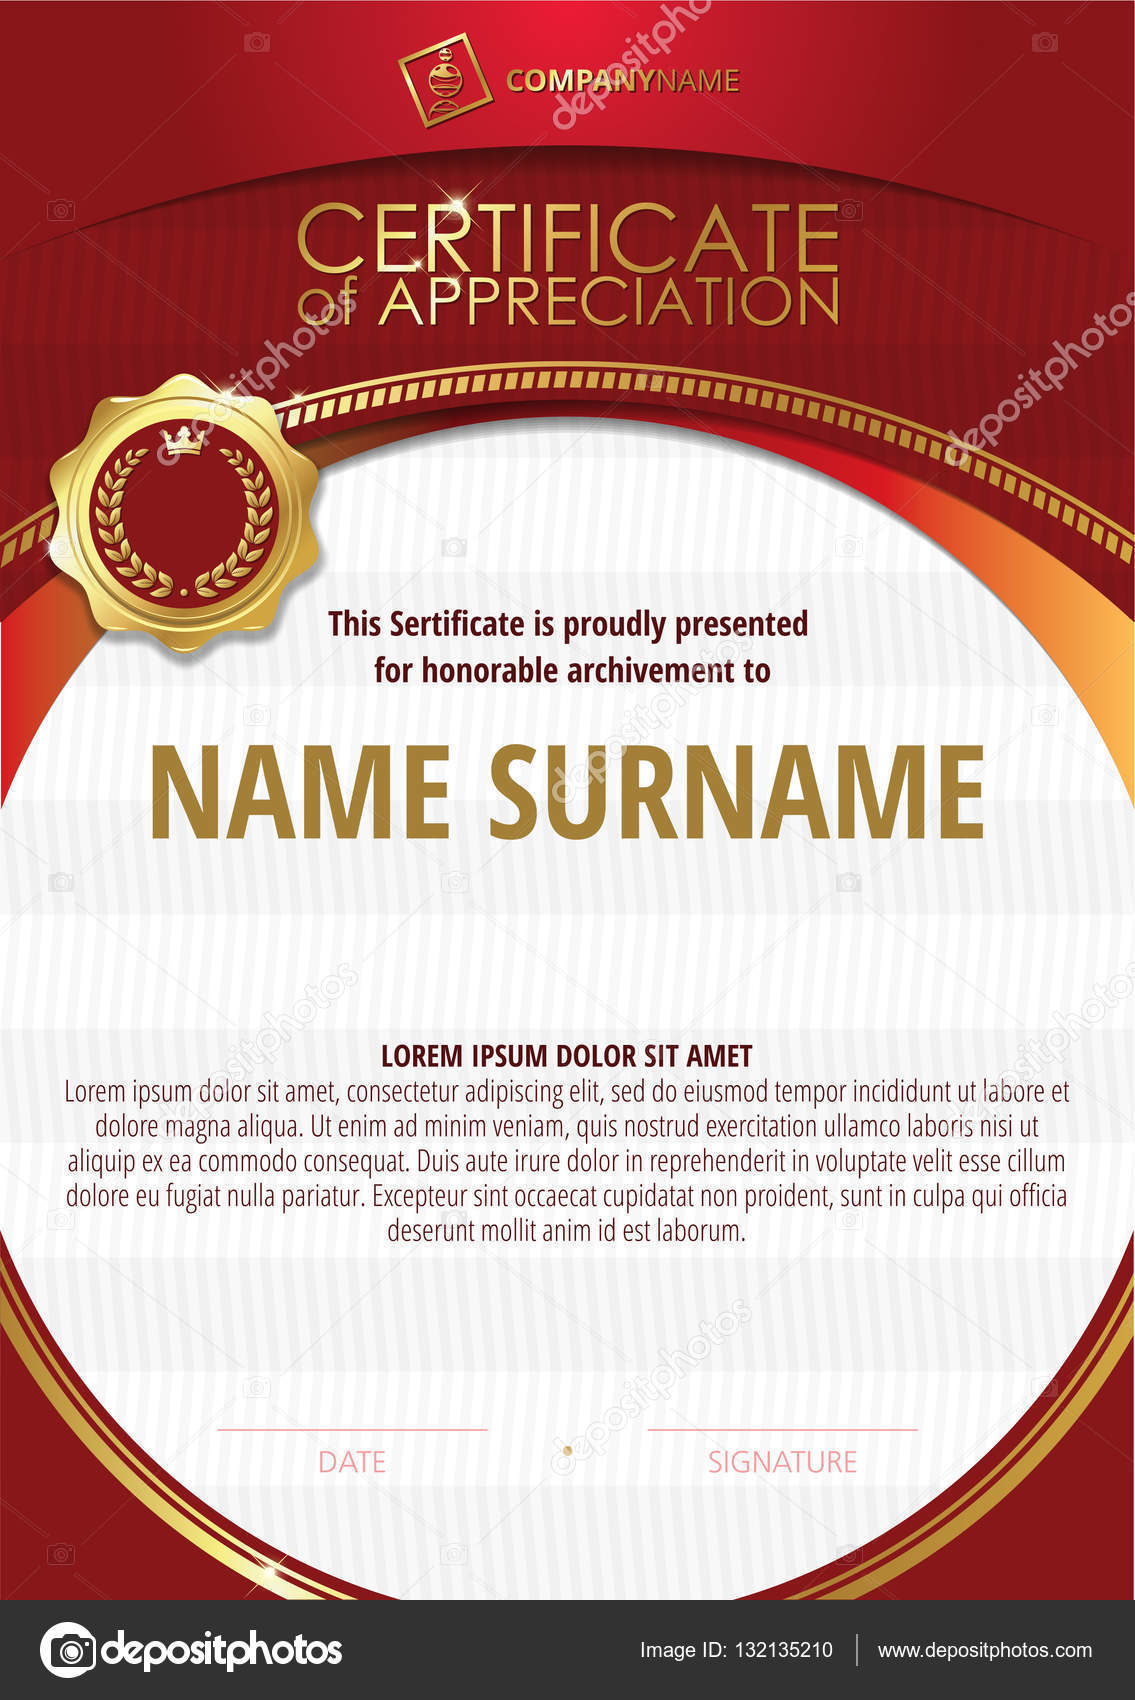 Template of certificate of appreciation with golden badge and red template of certificate of appreciation with golden badge and red round frame stock photo yelopaper Choice Image